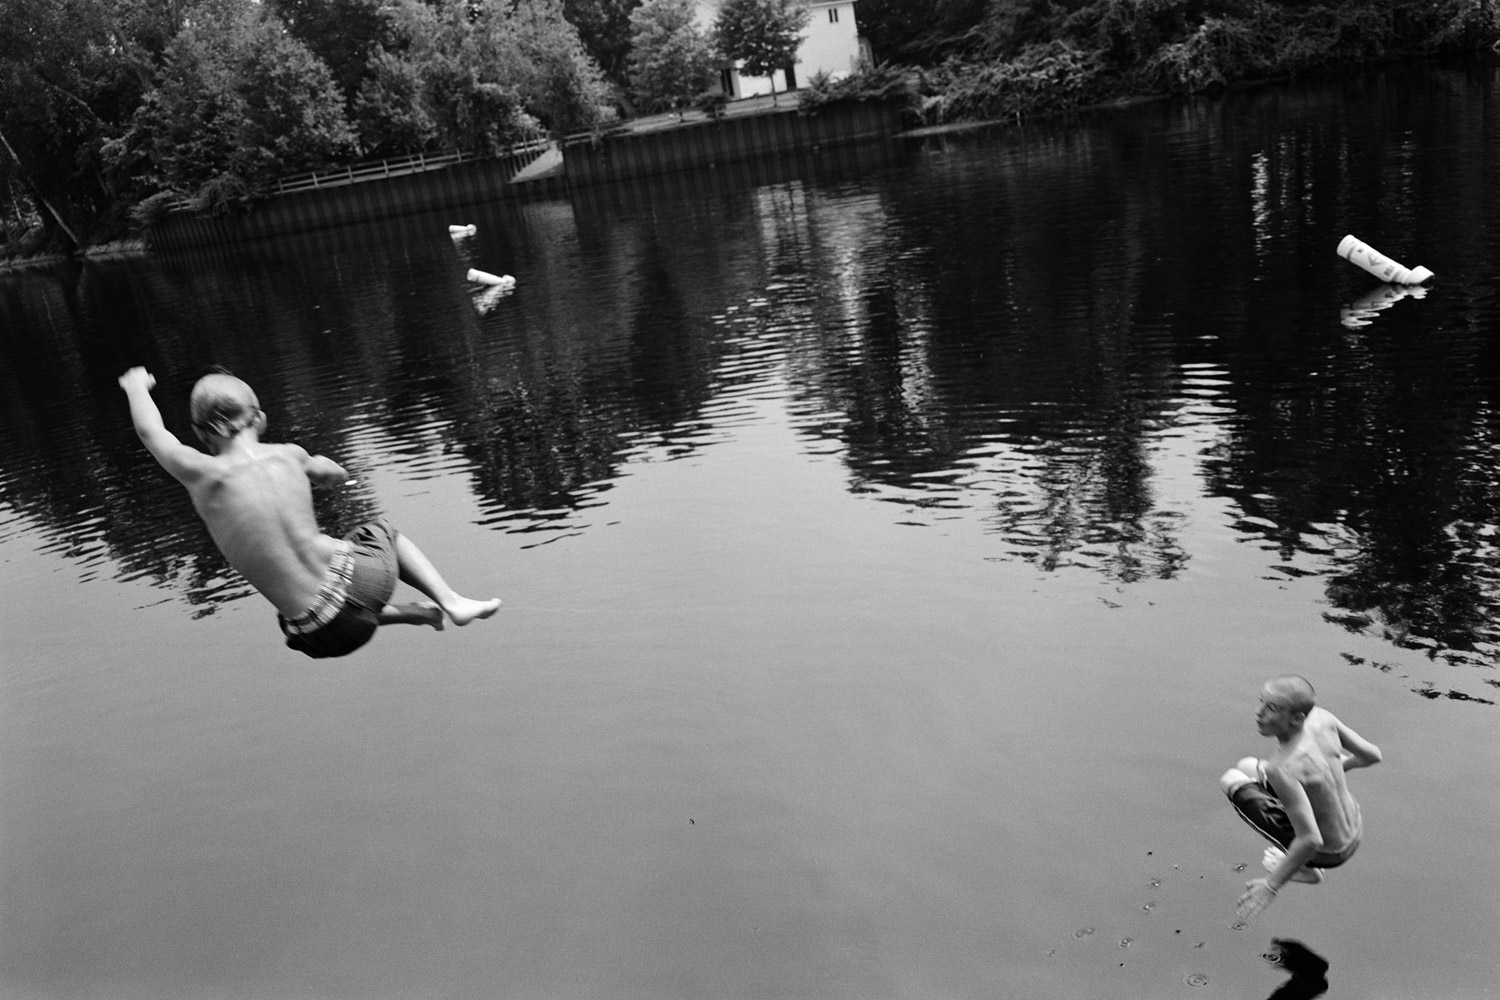 Young men jump into the river in Fort Edward, New York. This area is the site of the discharge of polychlorinated biphenyls into the river by the General Electric plant located immediately upriver, and has been undergoing dredging to remove the PCB's, as mandated by Superfund legislation and the suit brought against GE. 2010.